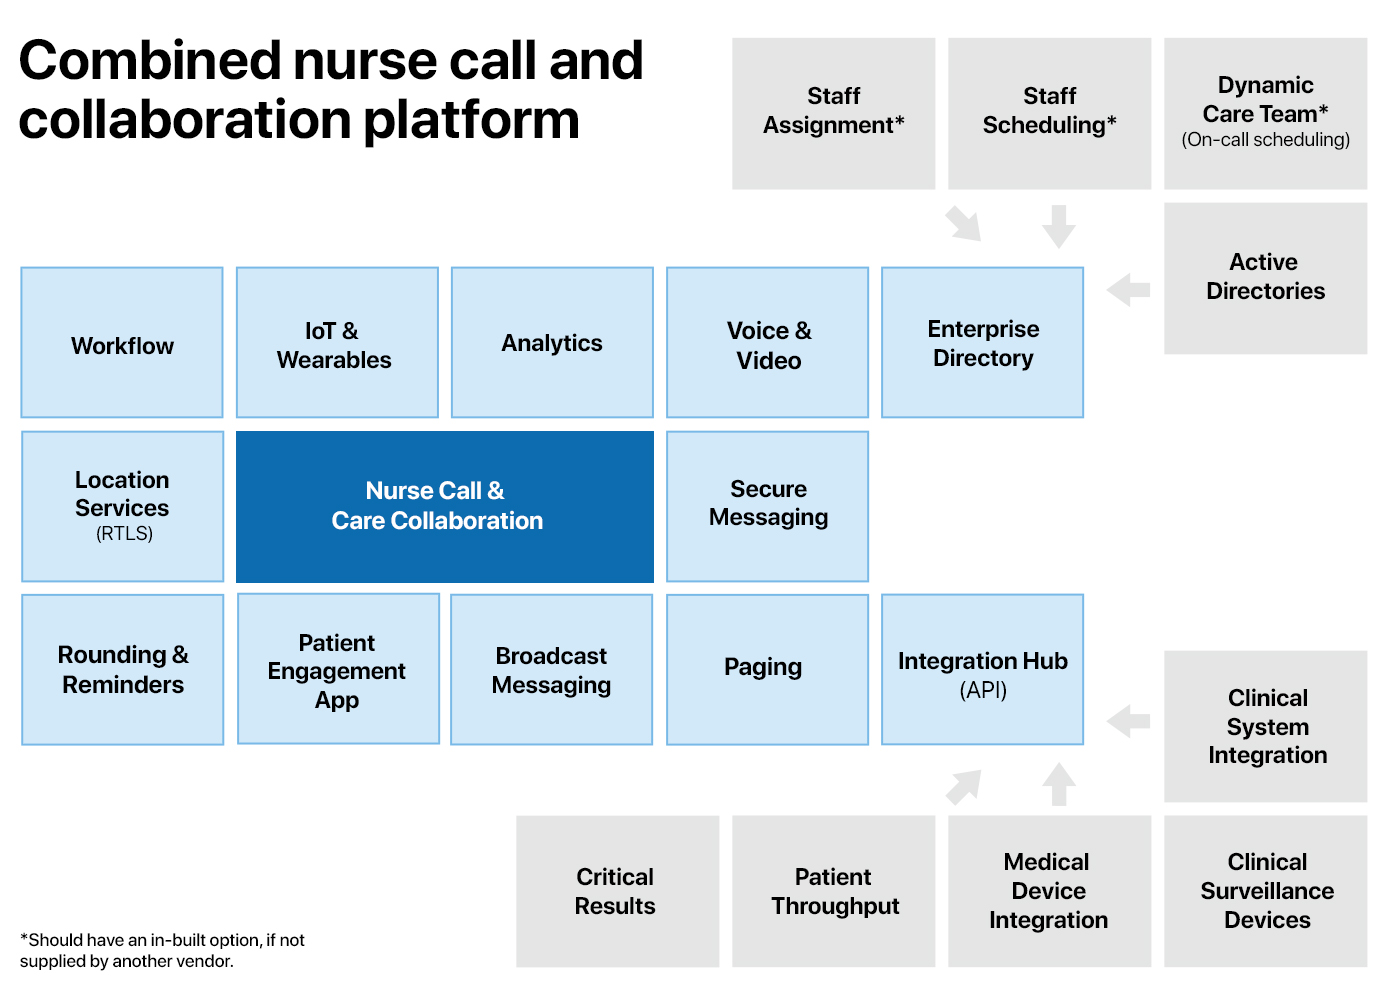 Combined nurse call and care team collaboration platform.